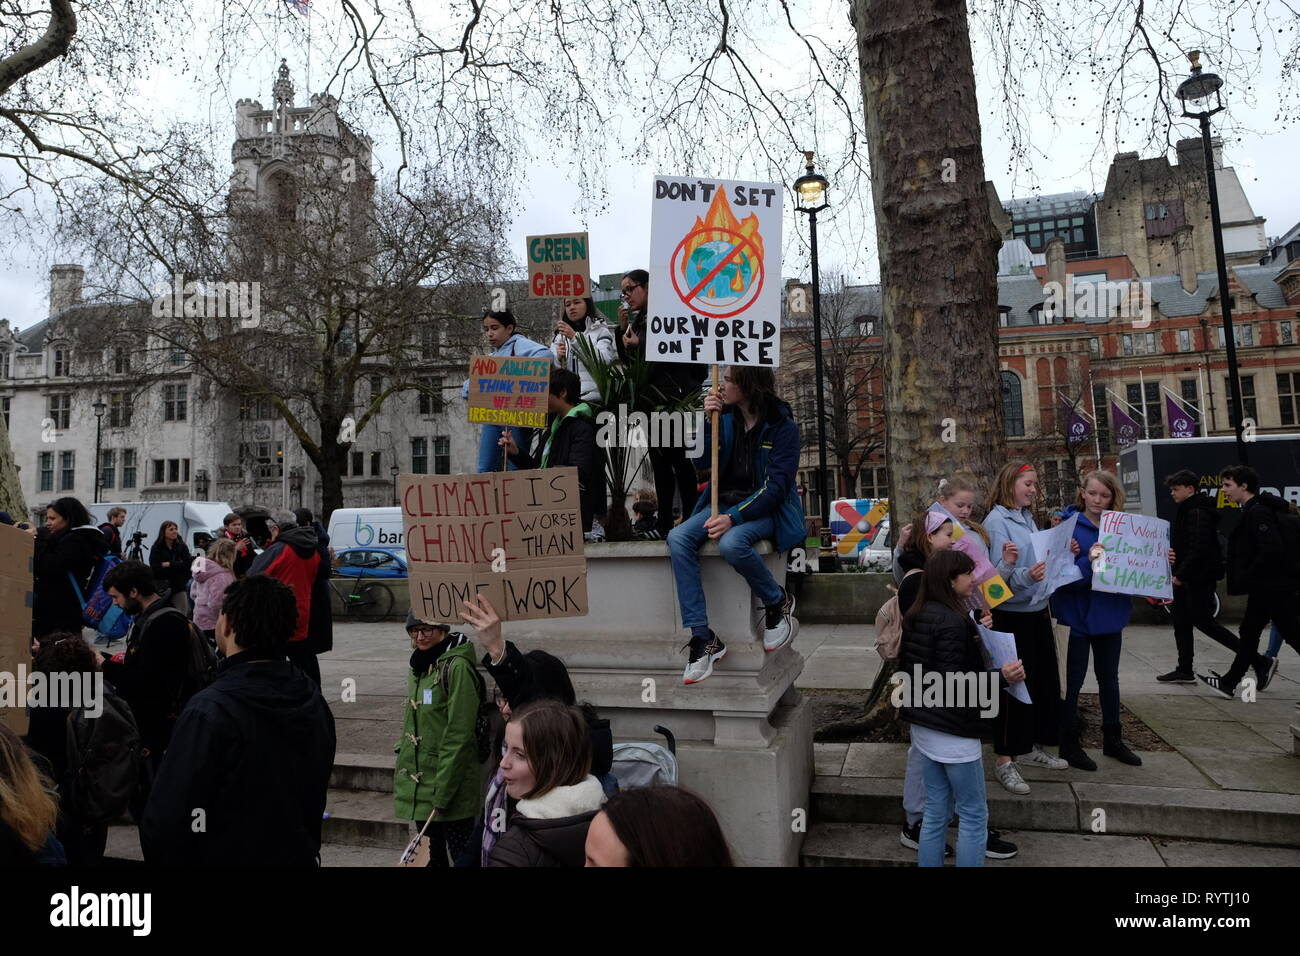 London, United Kinngdom - Friday 15 March 2019: Thousands of students and supporters gathered to picket on Parliament Square and The Departmnent for Business Energy and Industrial Strategy in support of Youth Strike 4 Climate. The #fridaysforfuture movement was started by Greta Thunberg, a 16 year-old Swedish Climate Activist and has gained momentum around the world. Stock Photo